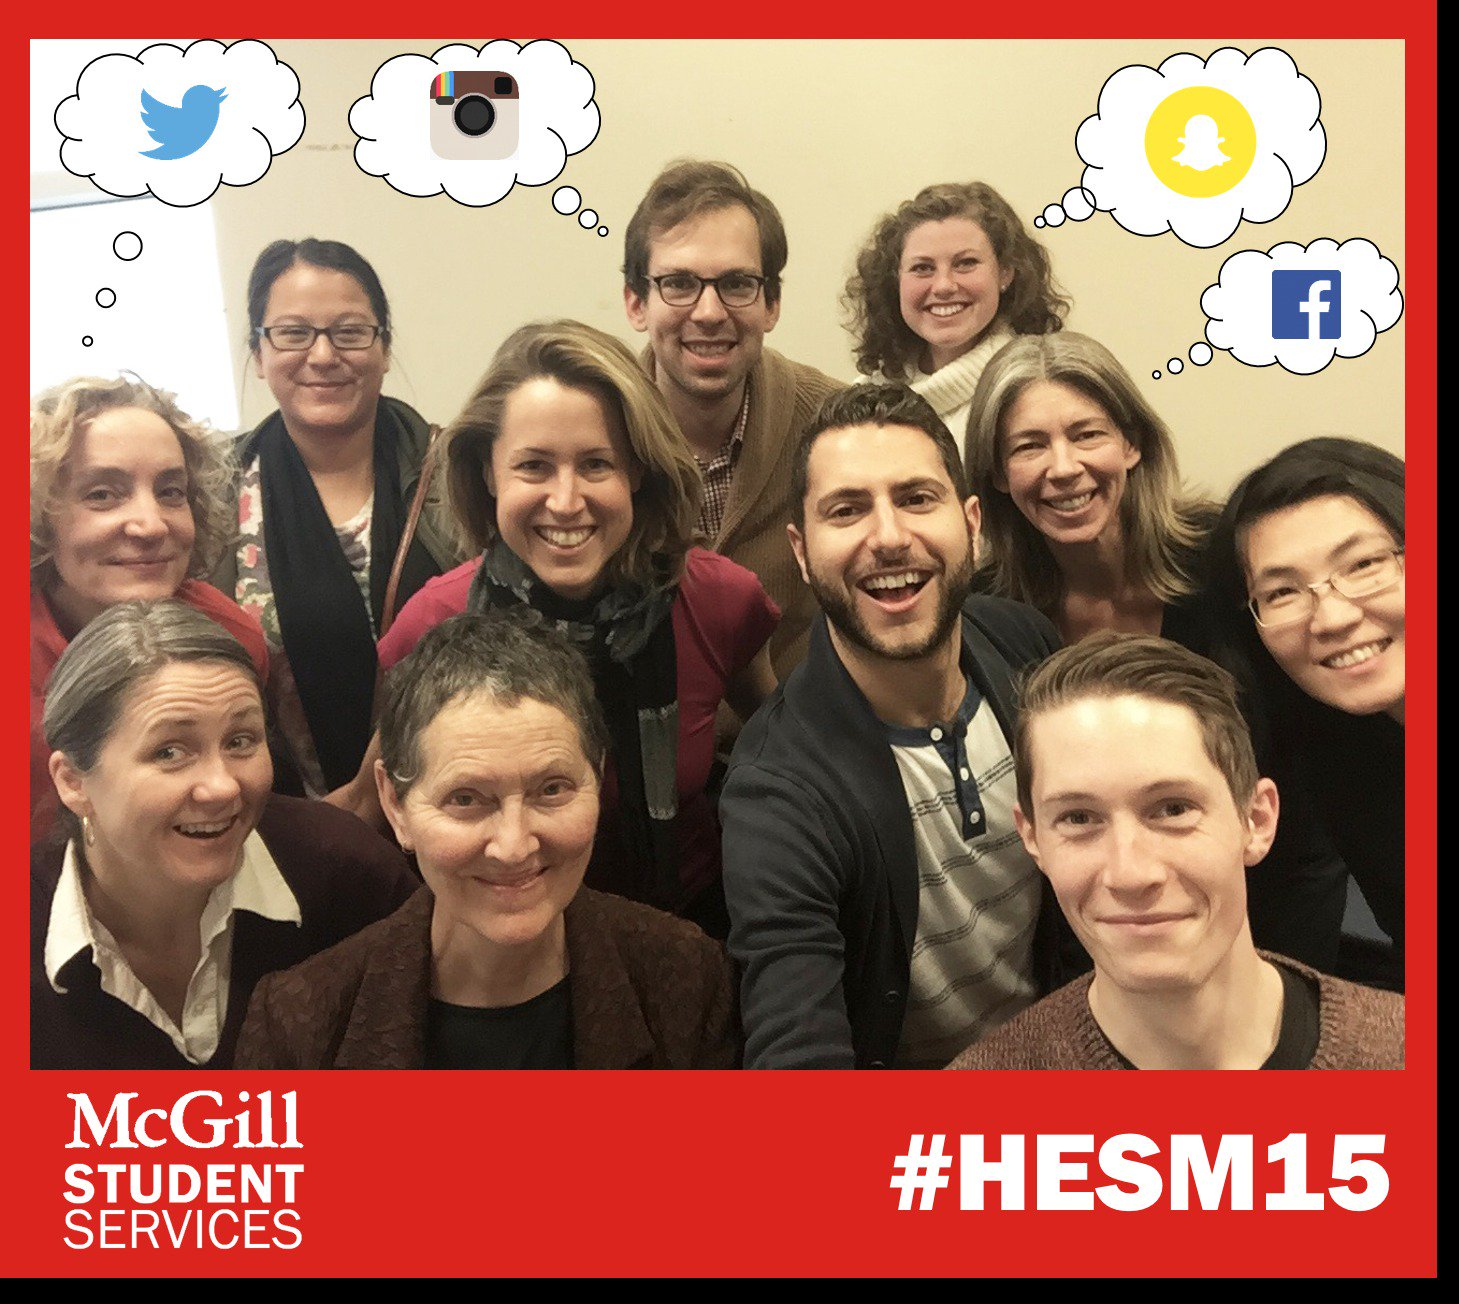 The @McGillU Student Services crew, thinking about social media innovations, thanks to #HESM15 #stuservsquad https://t.co/FxqJdiOSt2